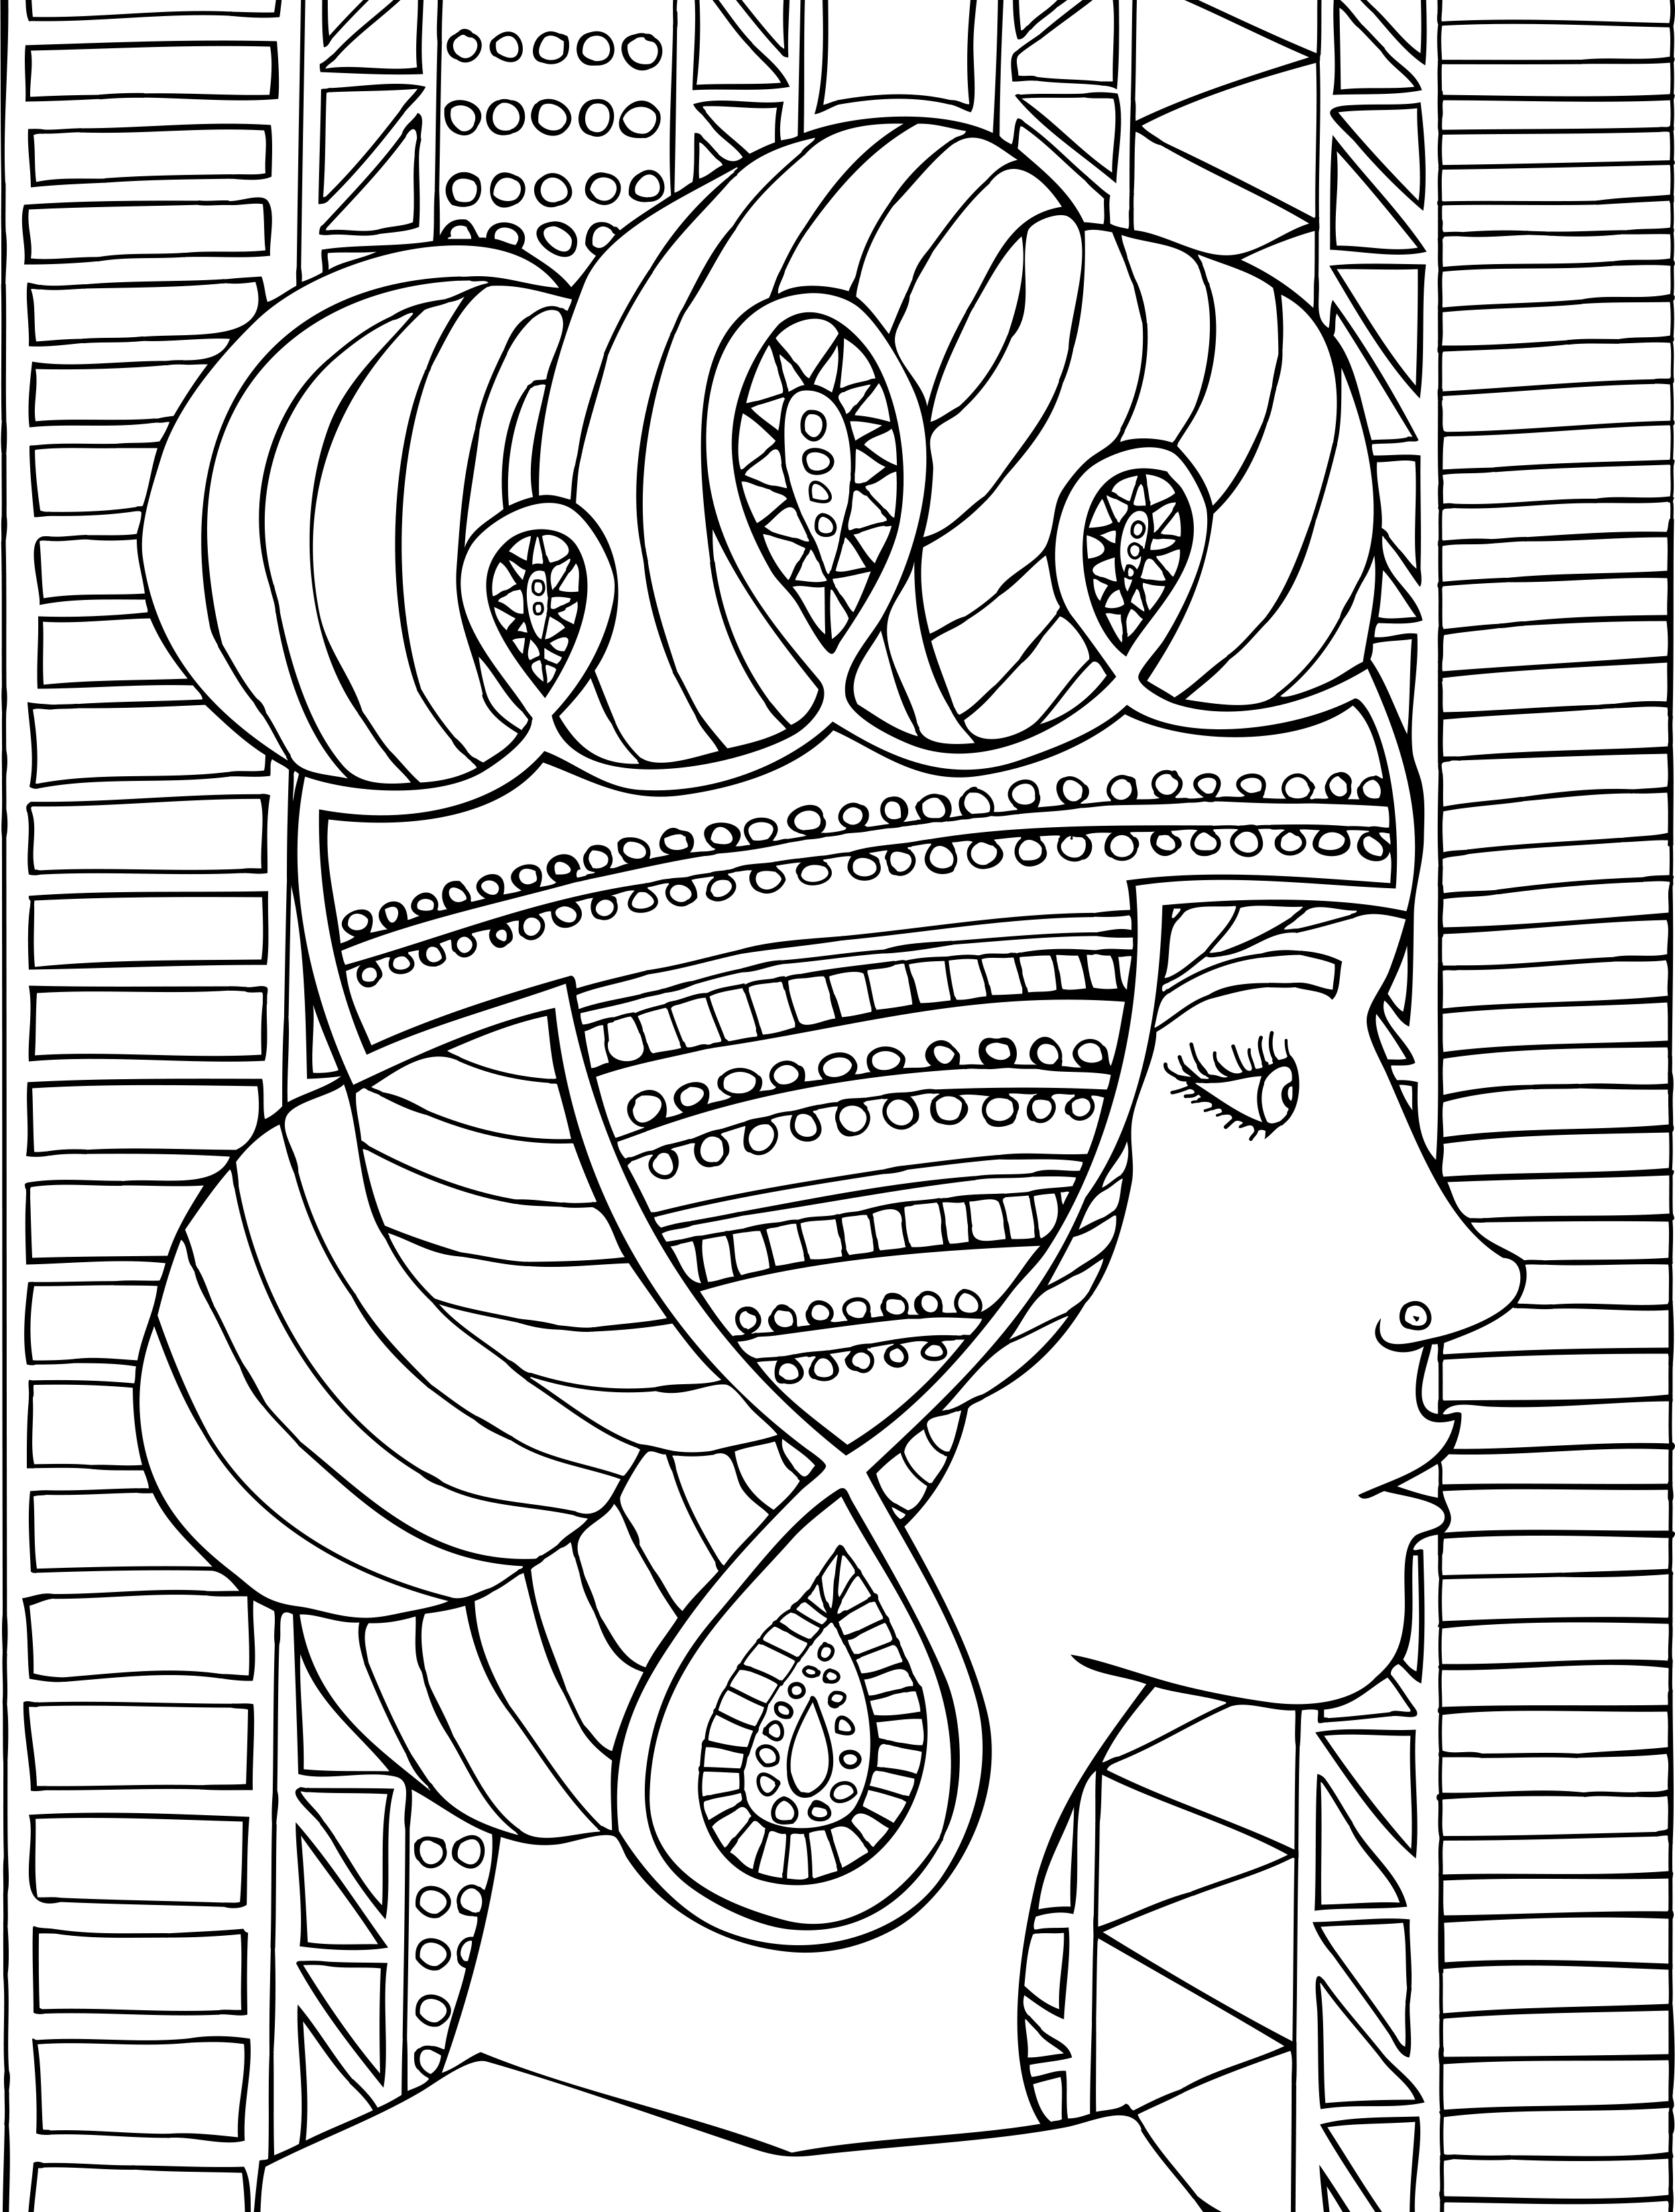 Inspirational Adult Coloring Pages | Tina Lensing Coaching